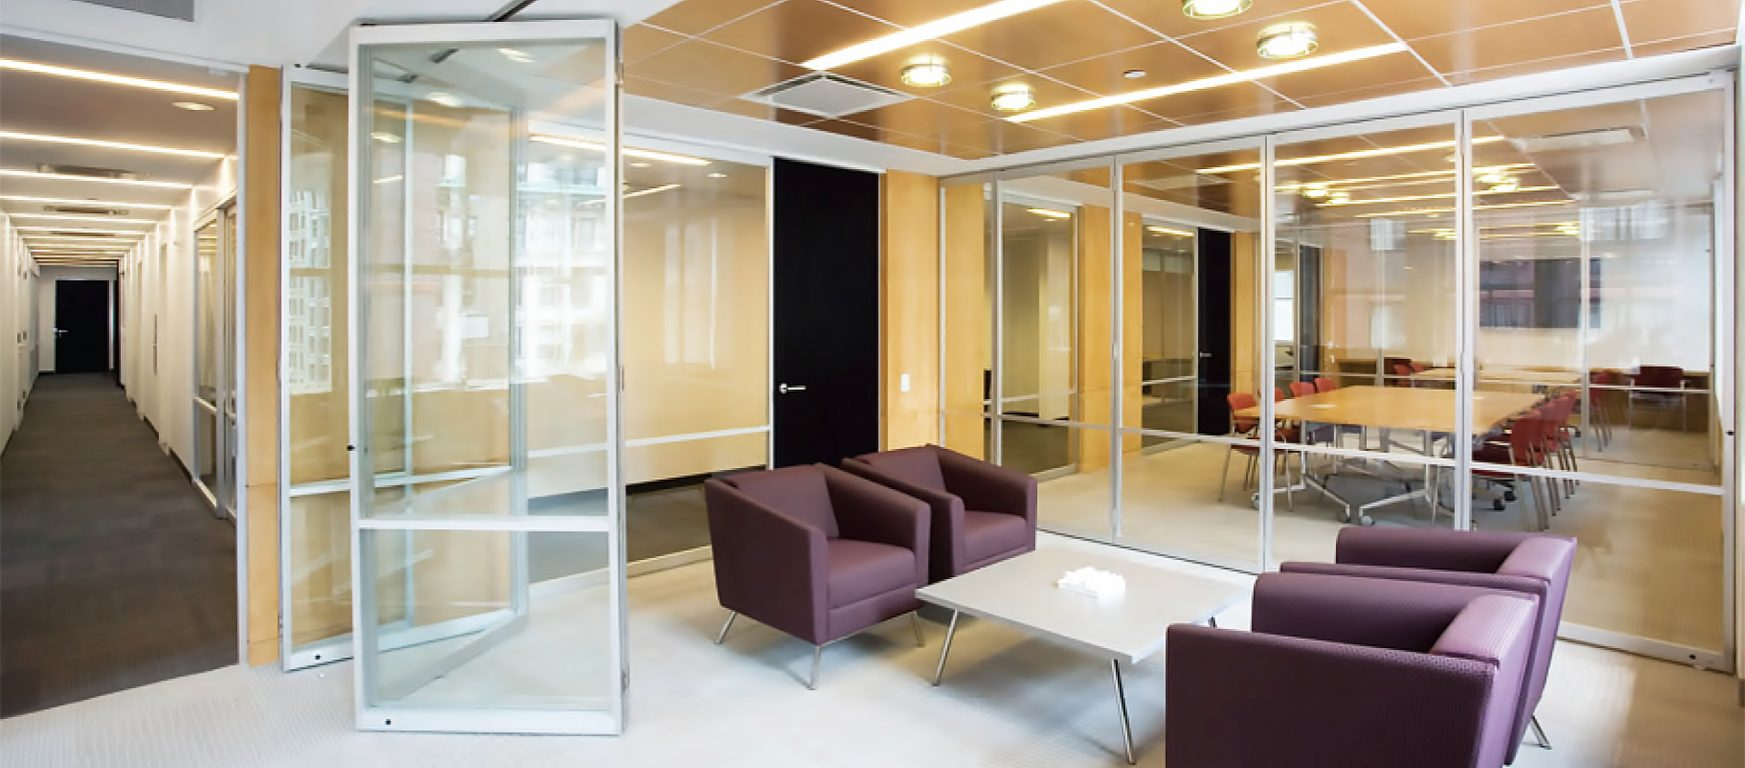 Pk 30 operable walls by modernfoldstyles for Folding glass walls